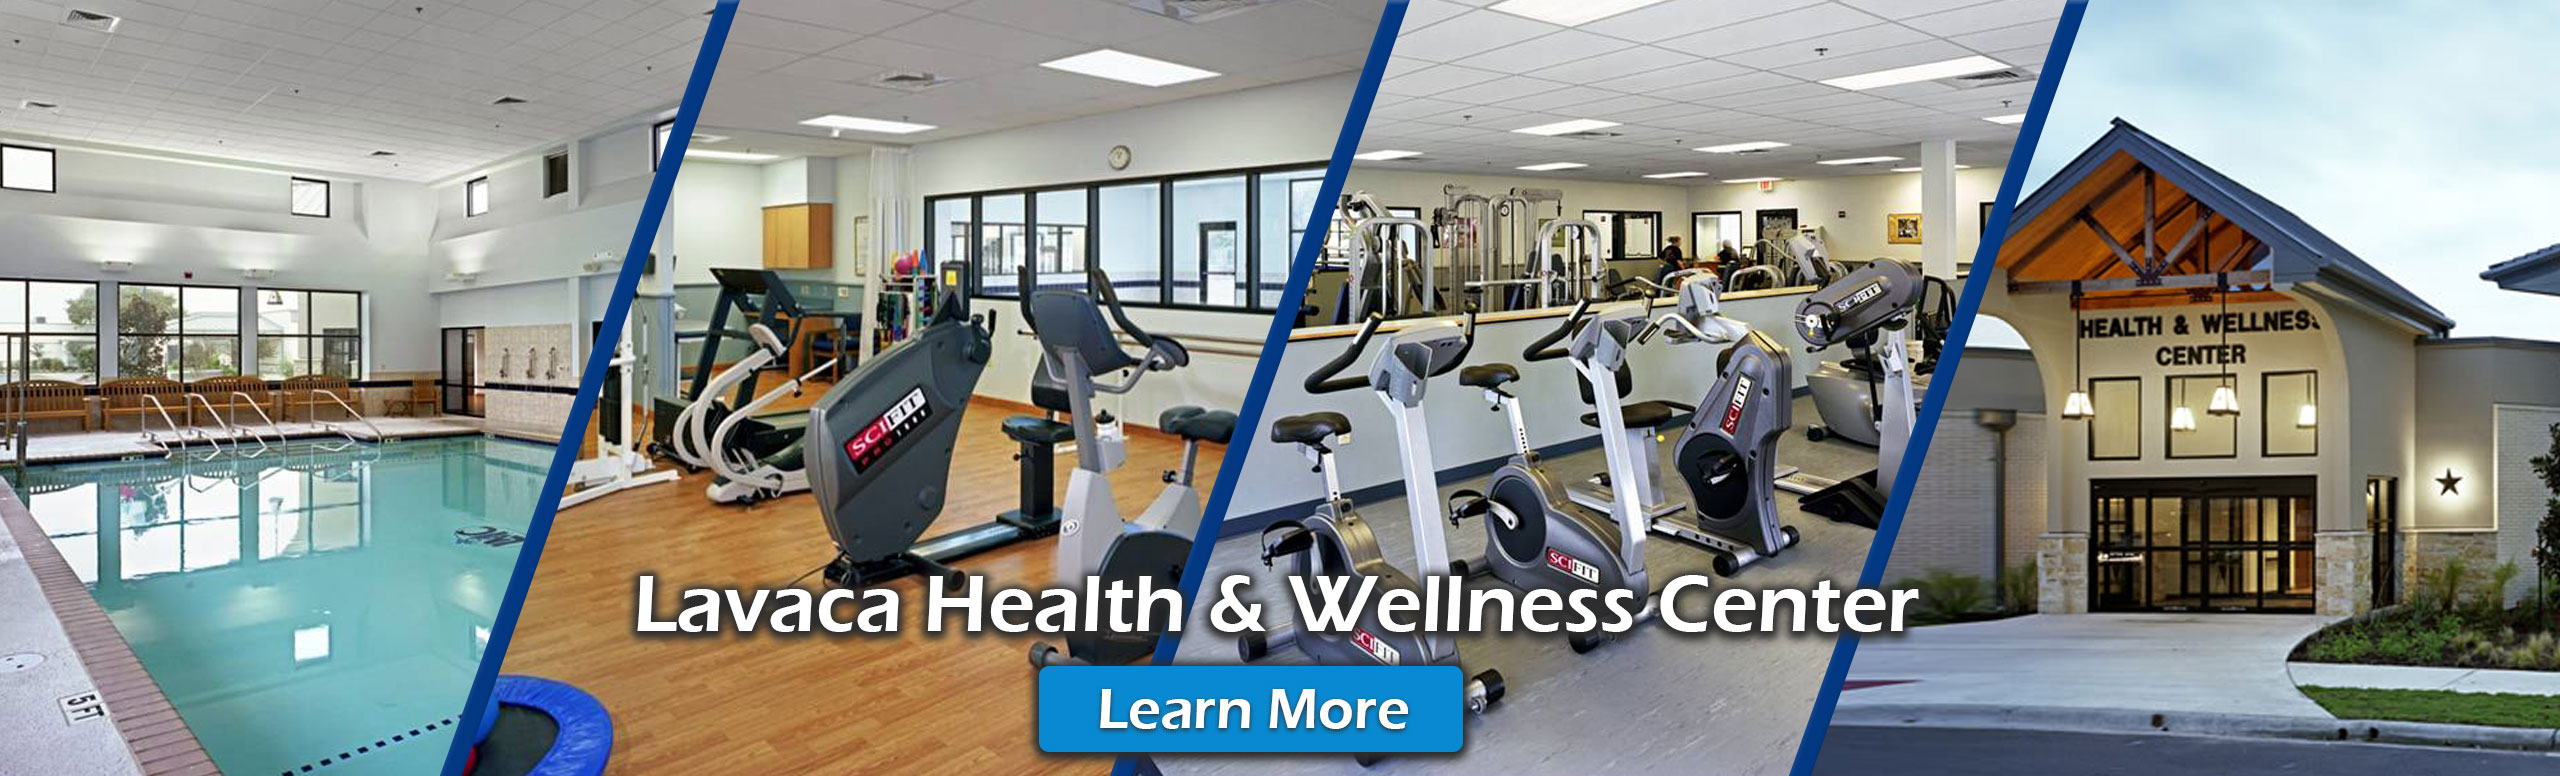 Picture of a banner with four different images   First image: Indoor Therapy Pool Second image: Gym equipment  Third image: Exercise bike and gym equipment  Fourth image: Lavaca Health & Wellness Center building  Banner says: Lavaca Health & Wellness Center Learn More